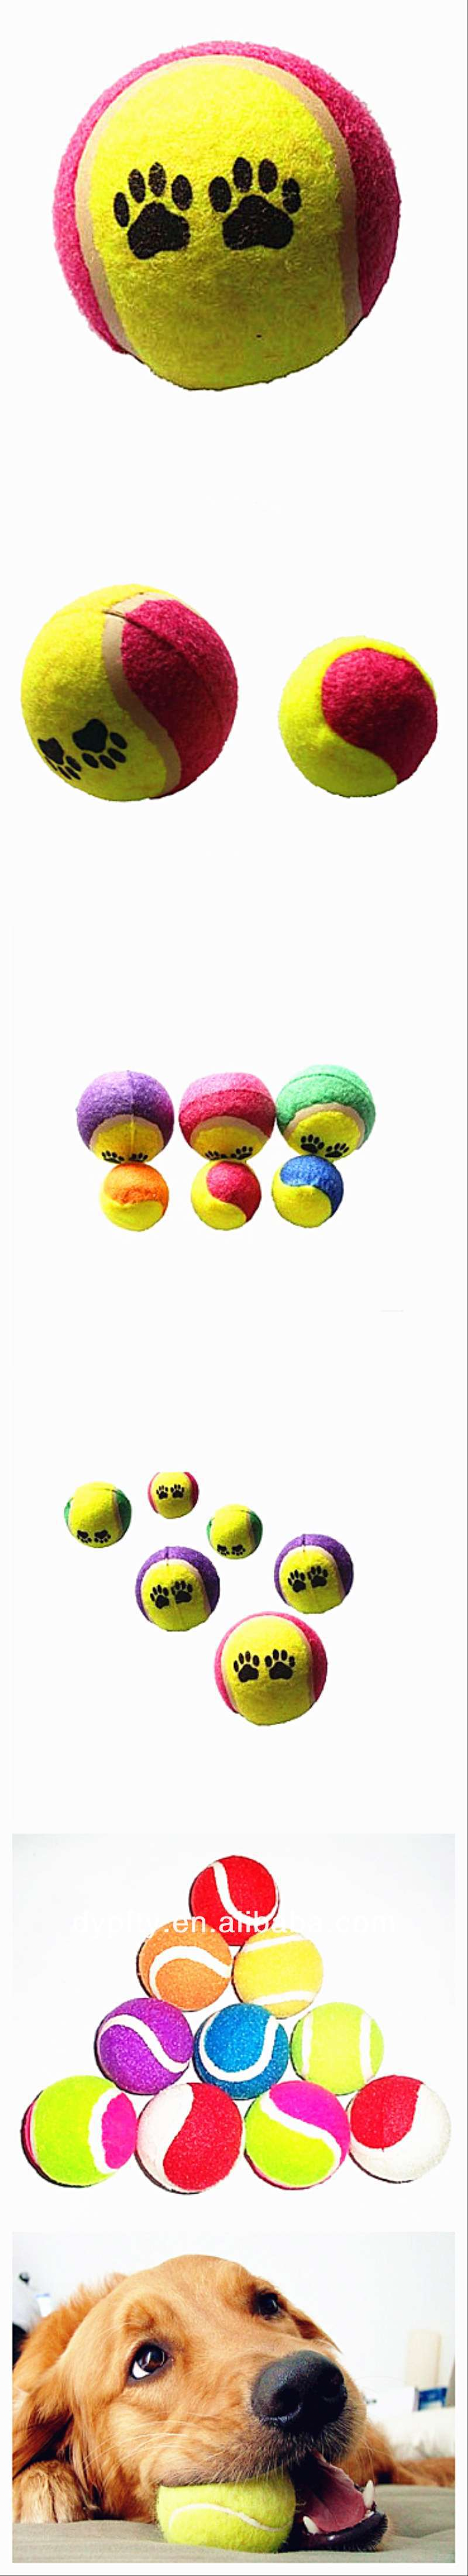 2.5' pet toy tennis ball jumbo tennis ball 2.5' pet toy tennis ball